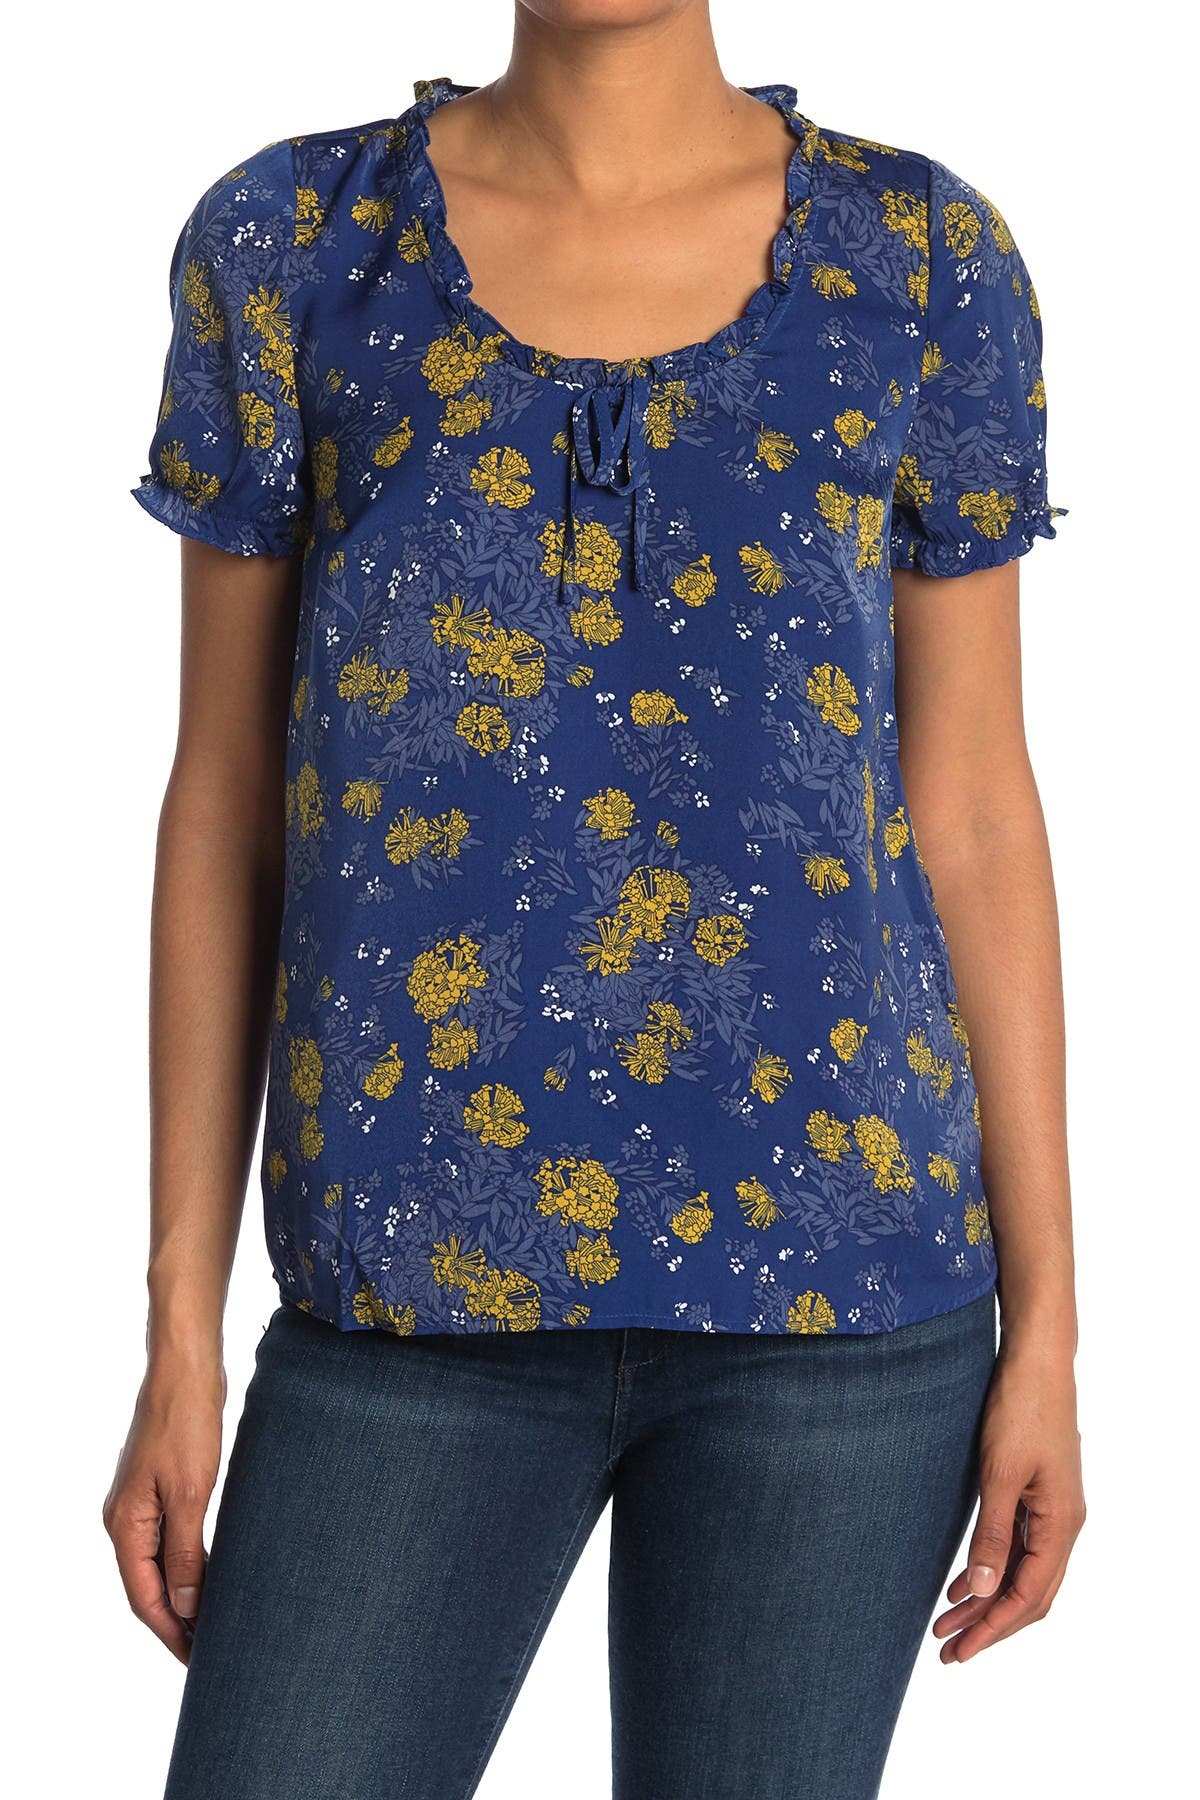 Image of MODCLOTH Short Puff Sleeve Scoop Neck Floral Blouse